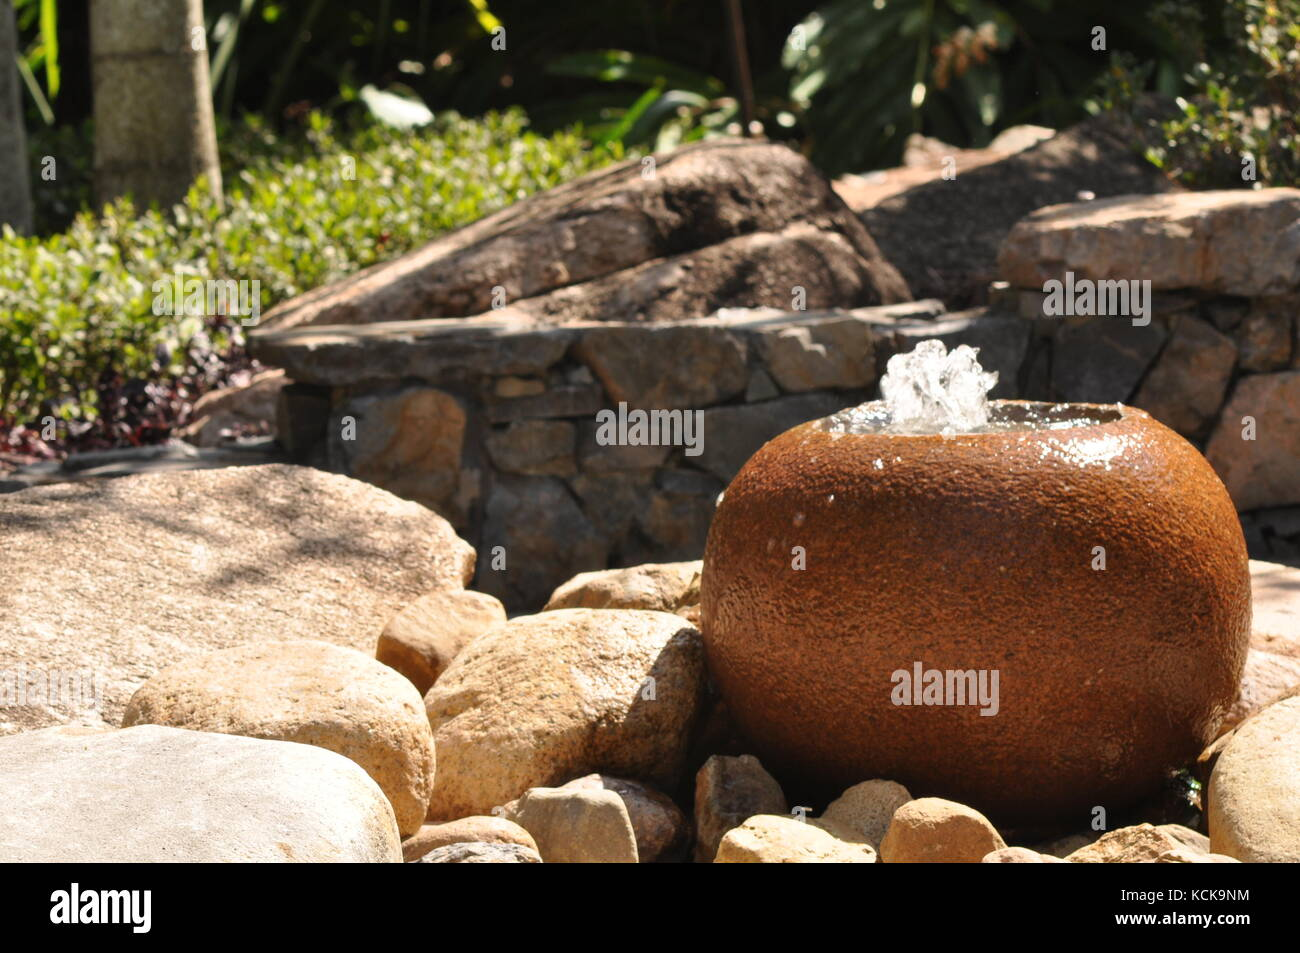 Trickle Fountain Stock Photos & Trickle Fountain Stock Images - Alamy